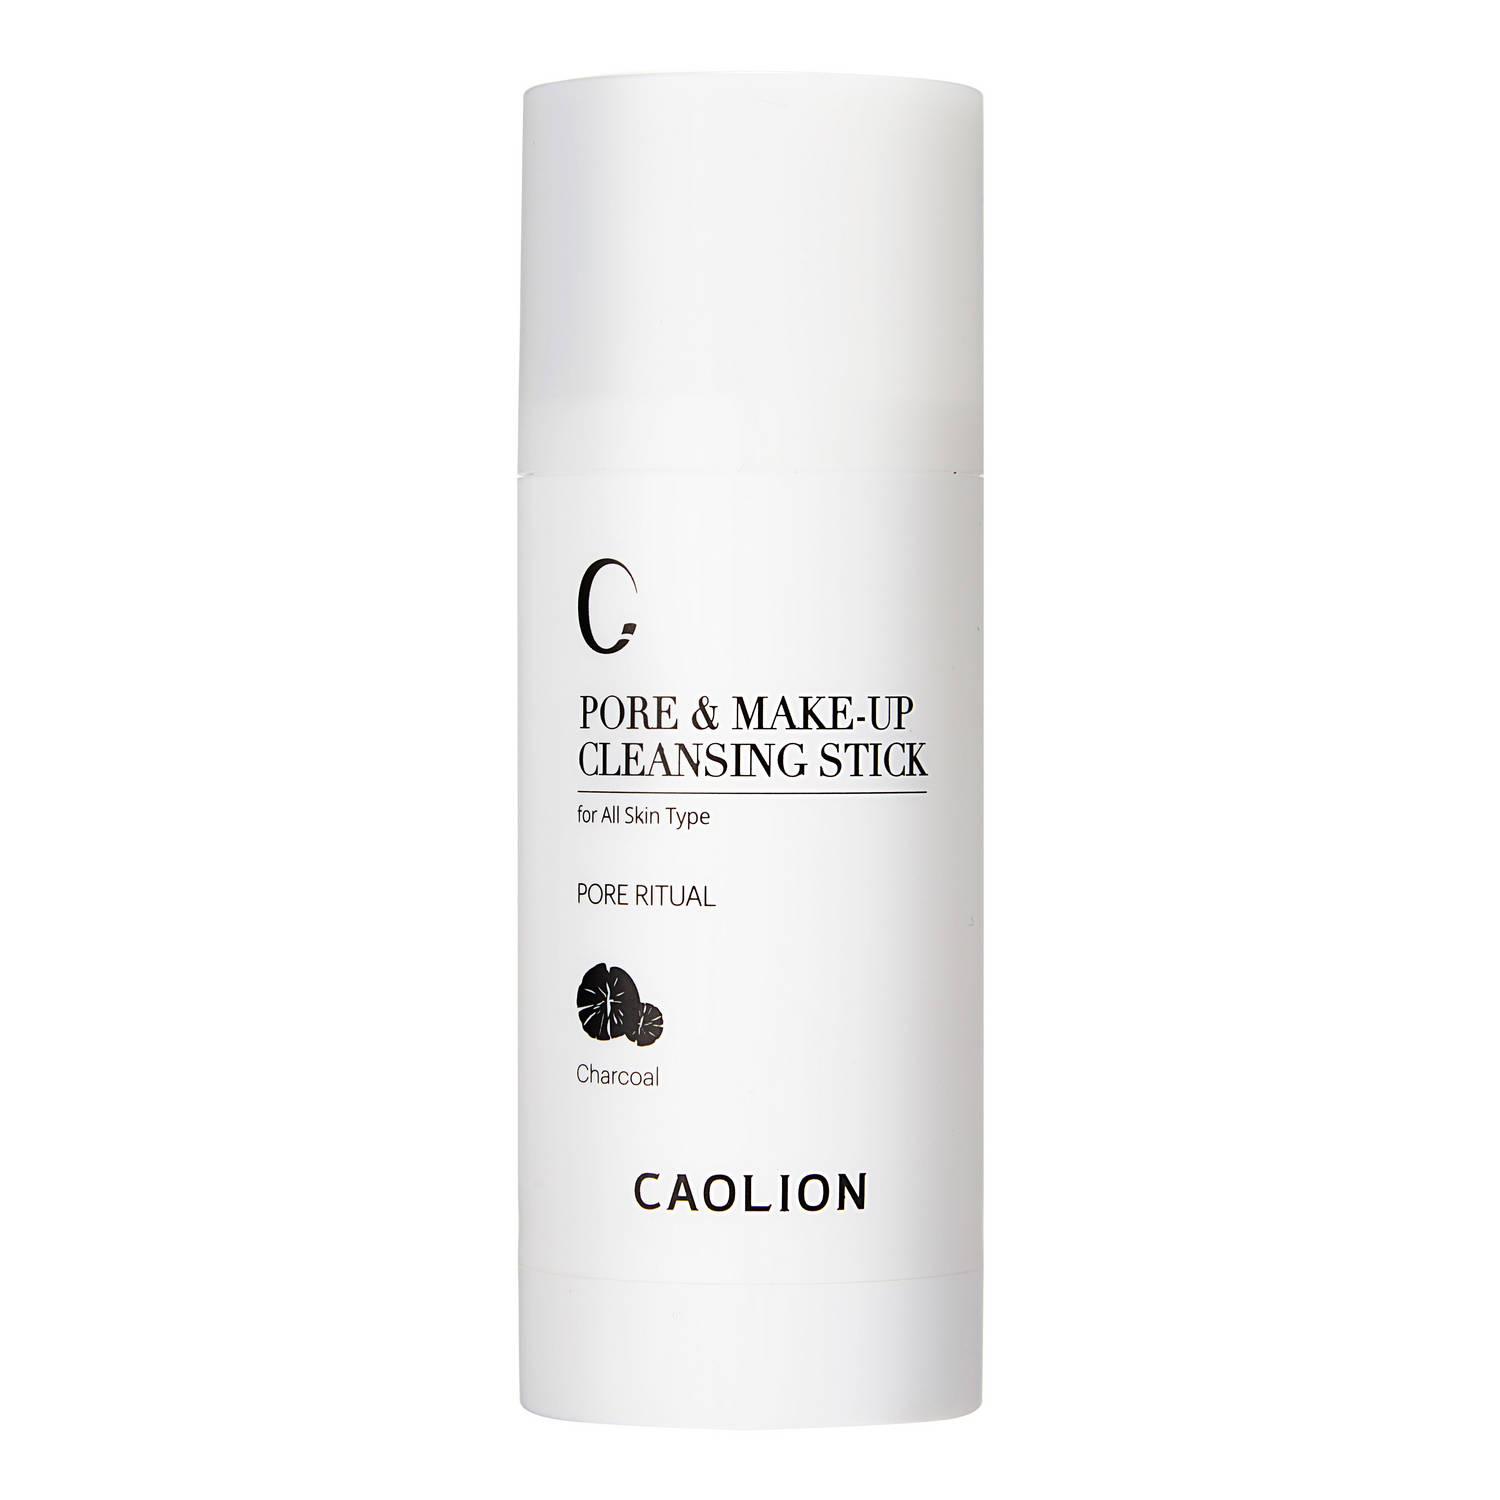 caolion pore & make-up cleanser stick korean beauty products